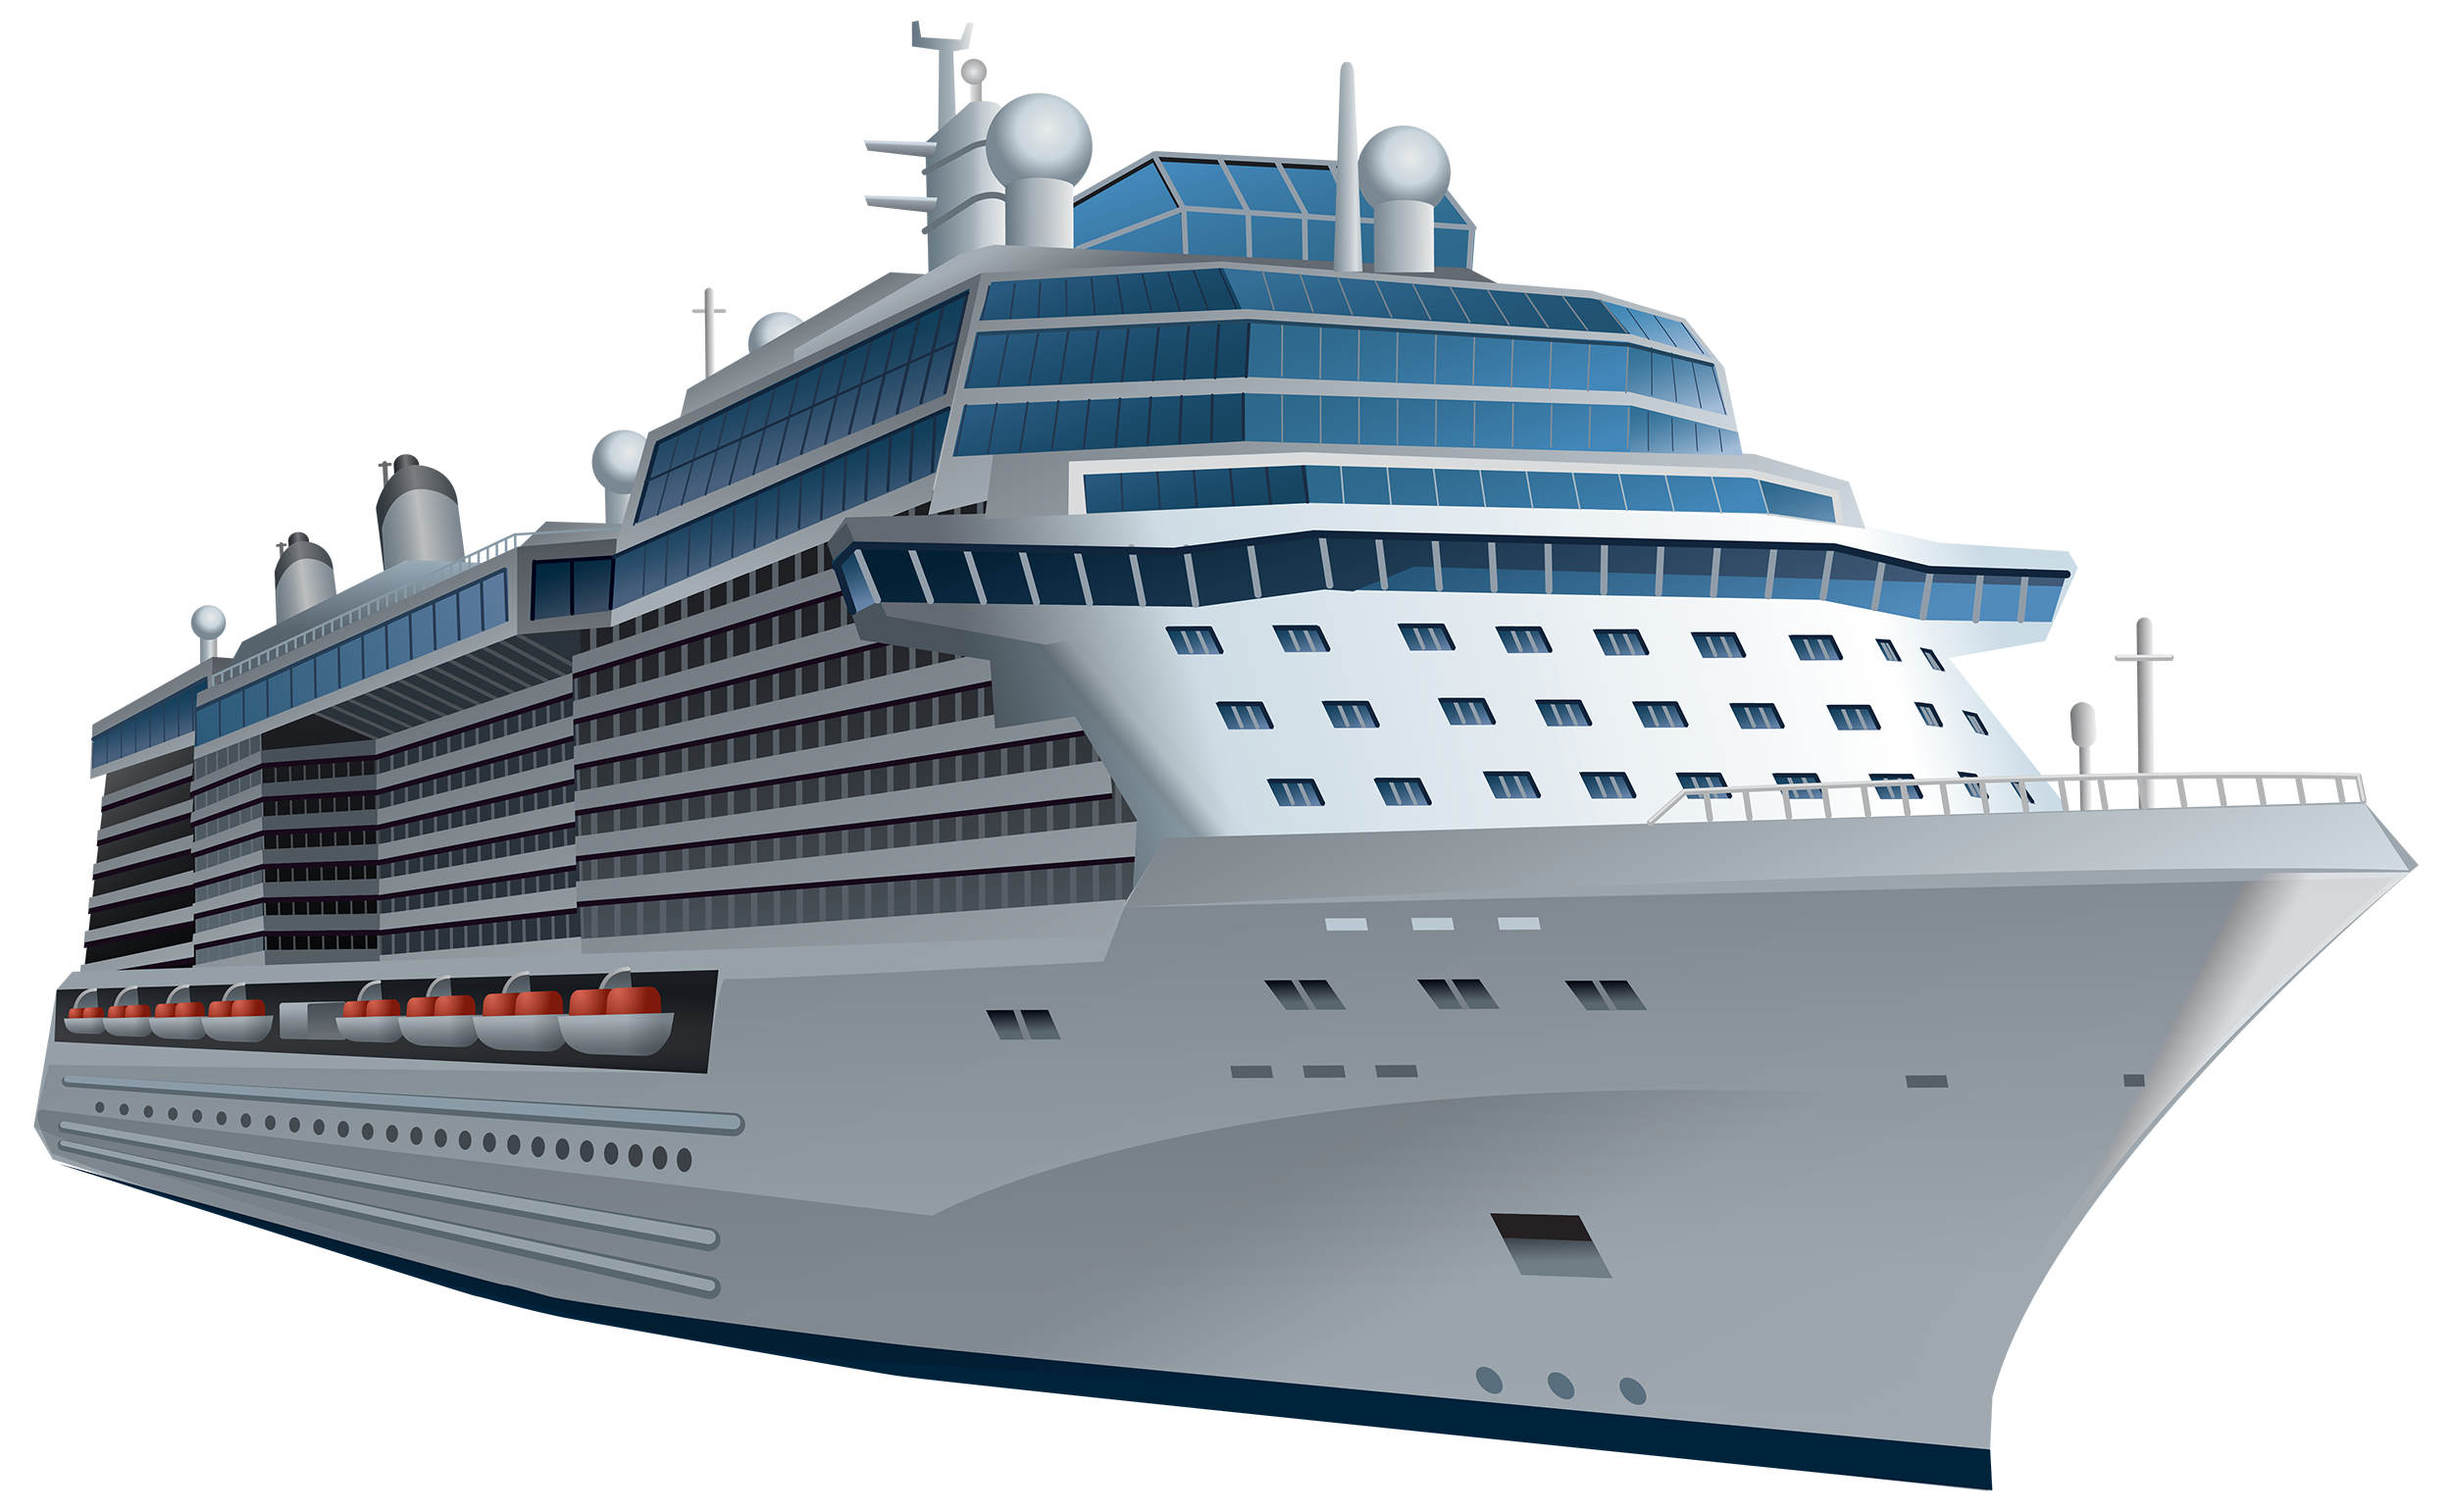 Cruise Ship PNG Transparent - Ship PNG HD